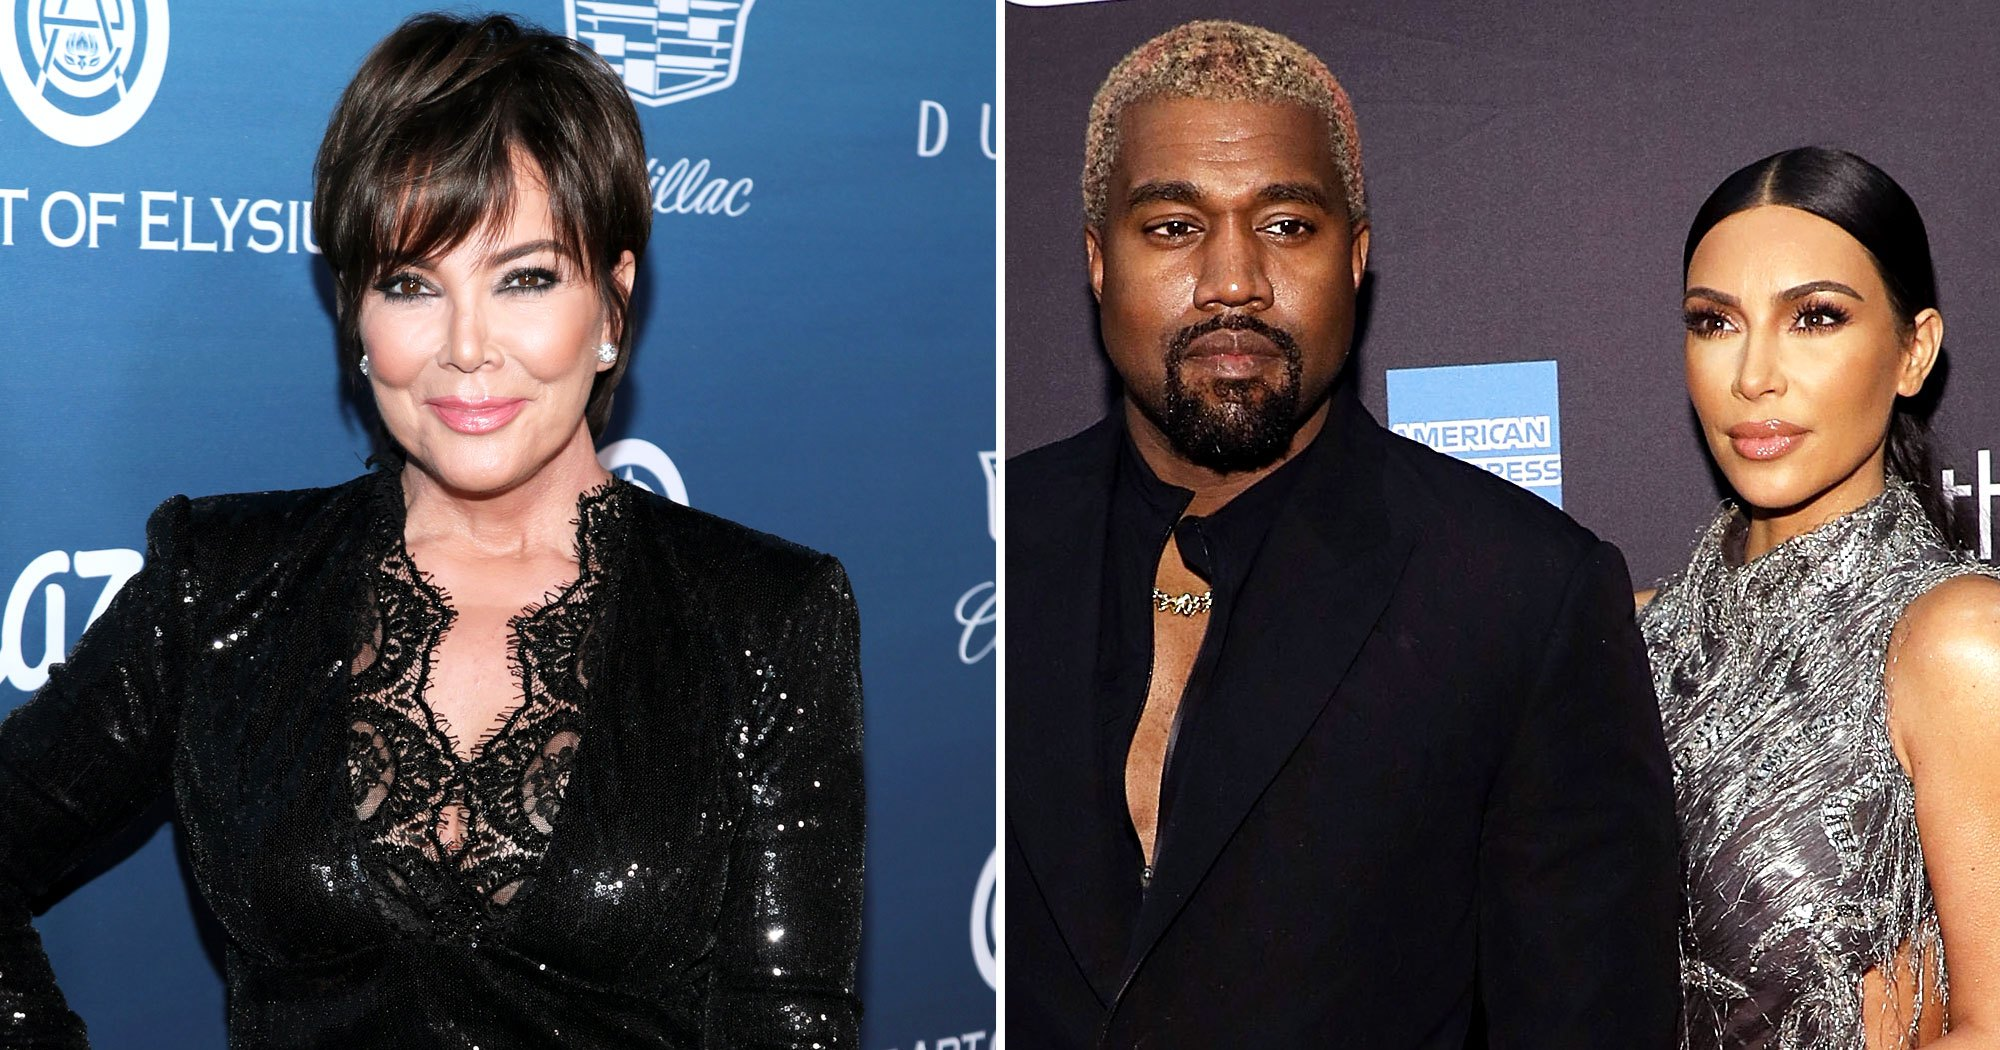 Kris Jenner Reacts to Kim Kardashian Expecting Baby No. 4 With Kanye